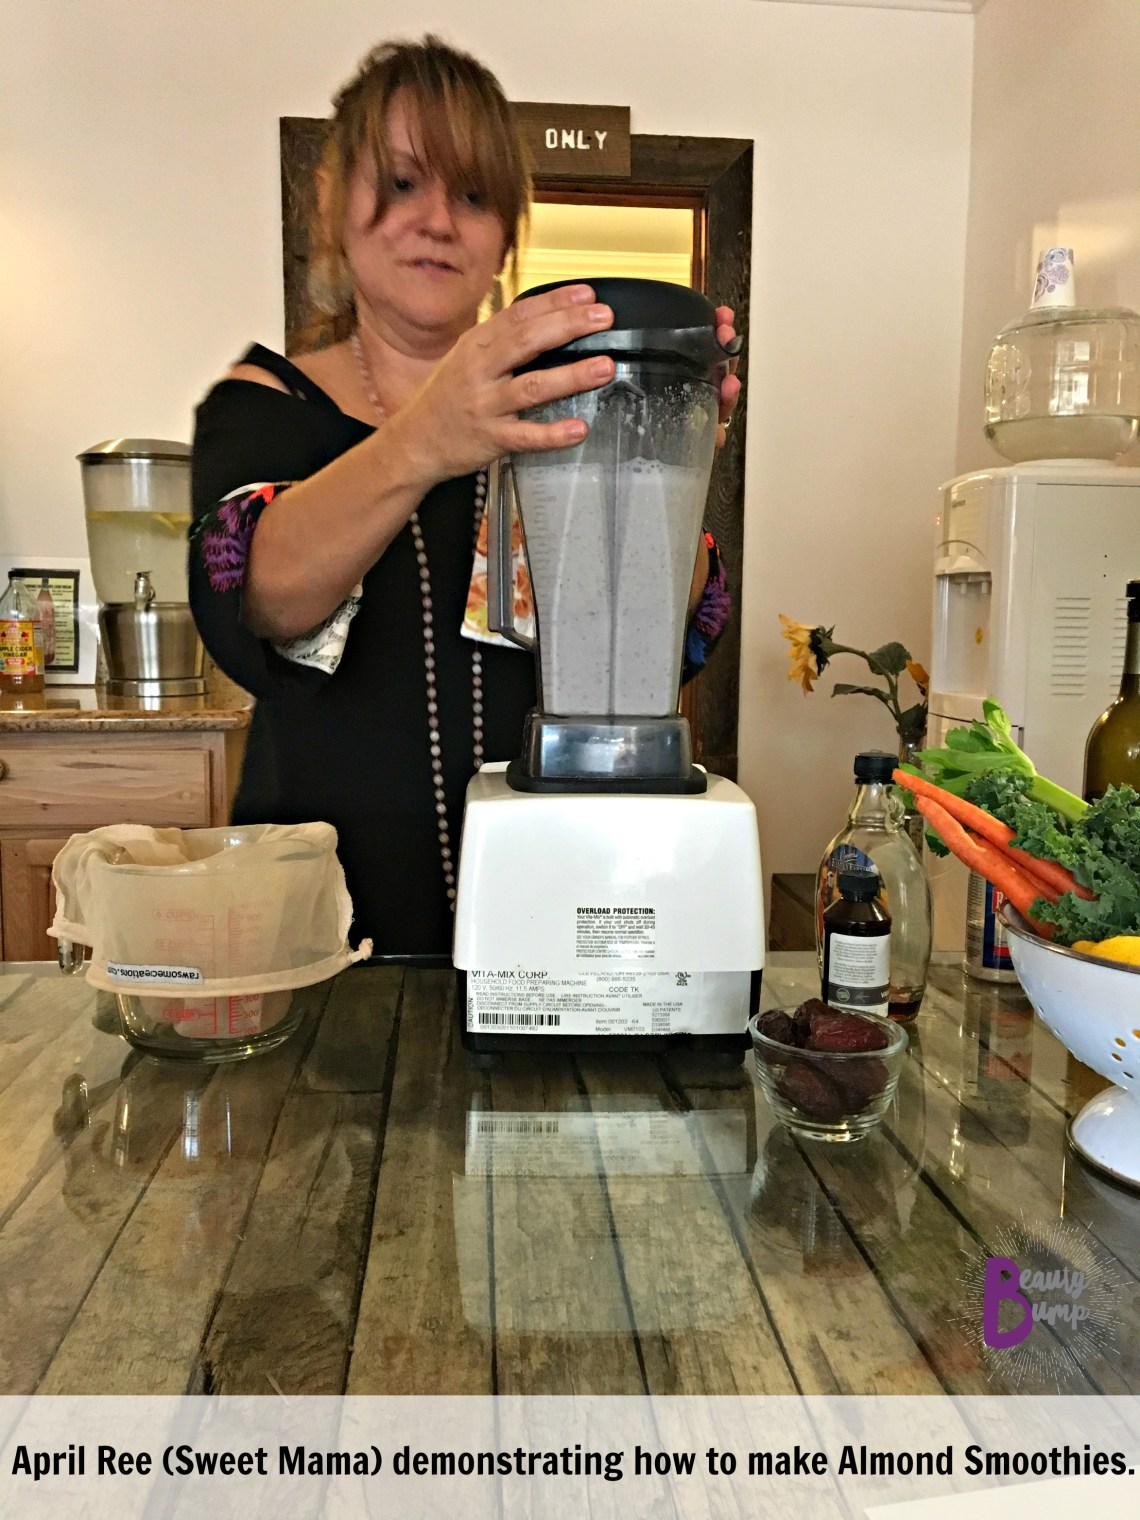 deer-lake-lodge-resort-april-ree-making-almond-smoothies